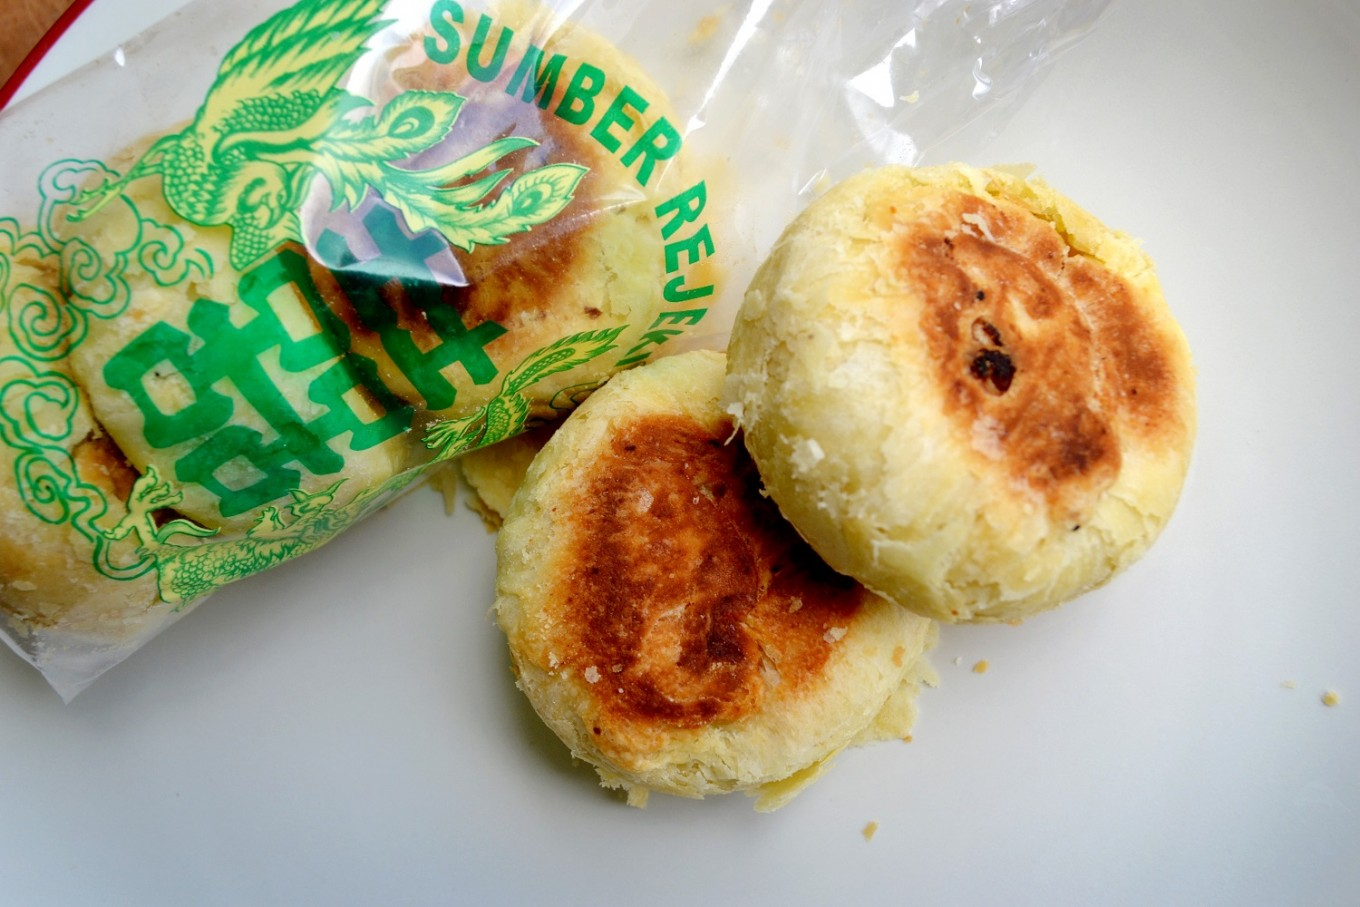 Surakarta-style bakpia. In Surakarta, 'bakpia' is a breakfast staple for buyers and sellers in Pasar Gede.